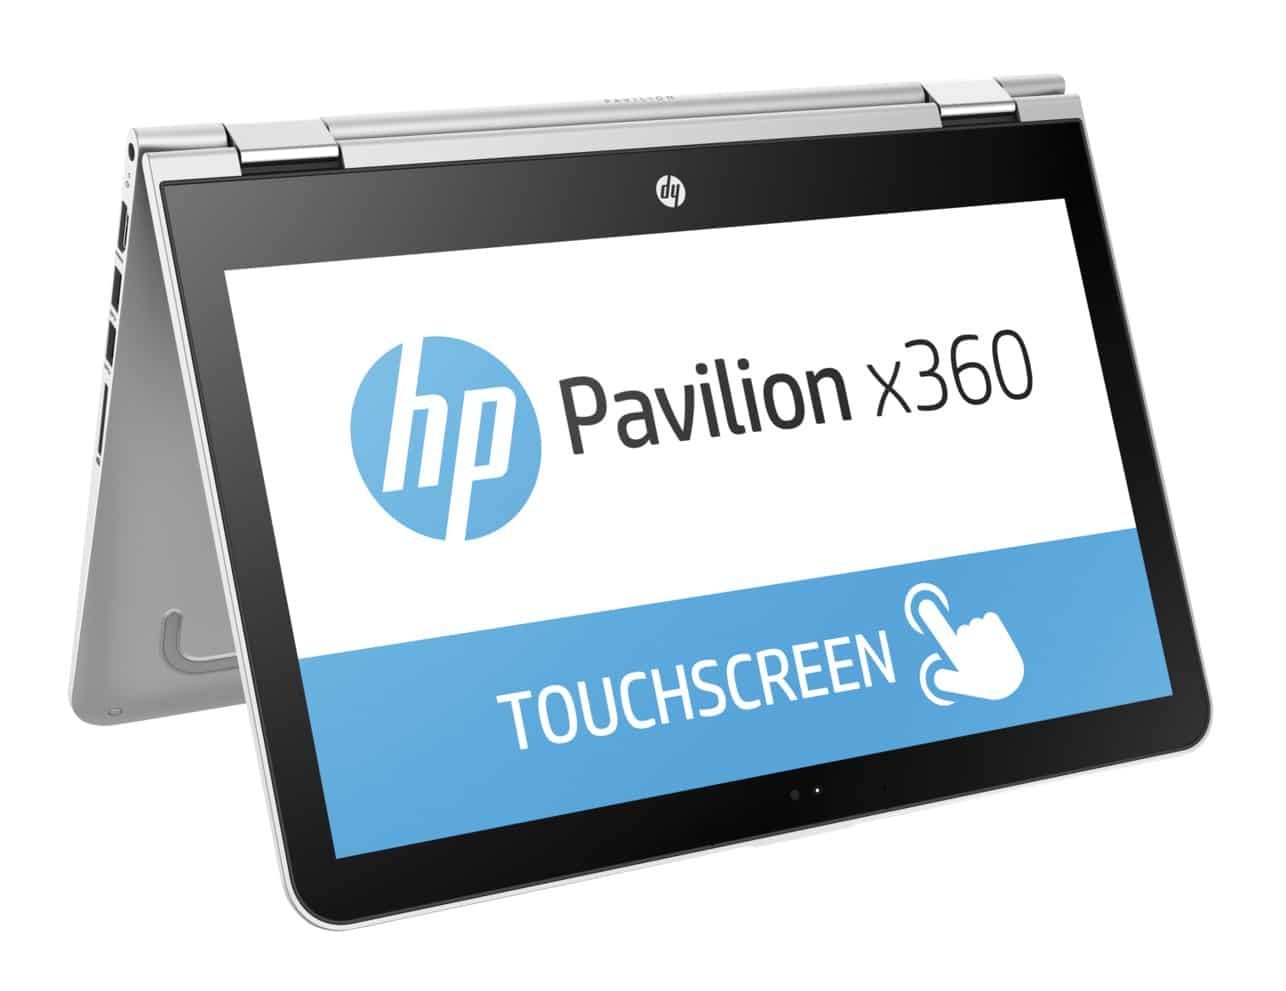 HP Pavilion x360 13-u104nf, ultrabook 13 pouces convertible i3 Kaby IPS à 569€